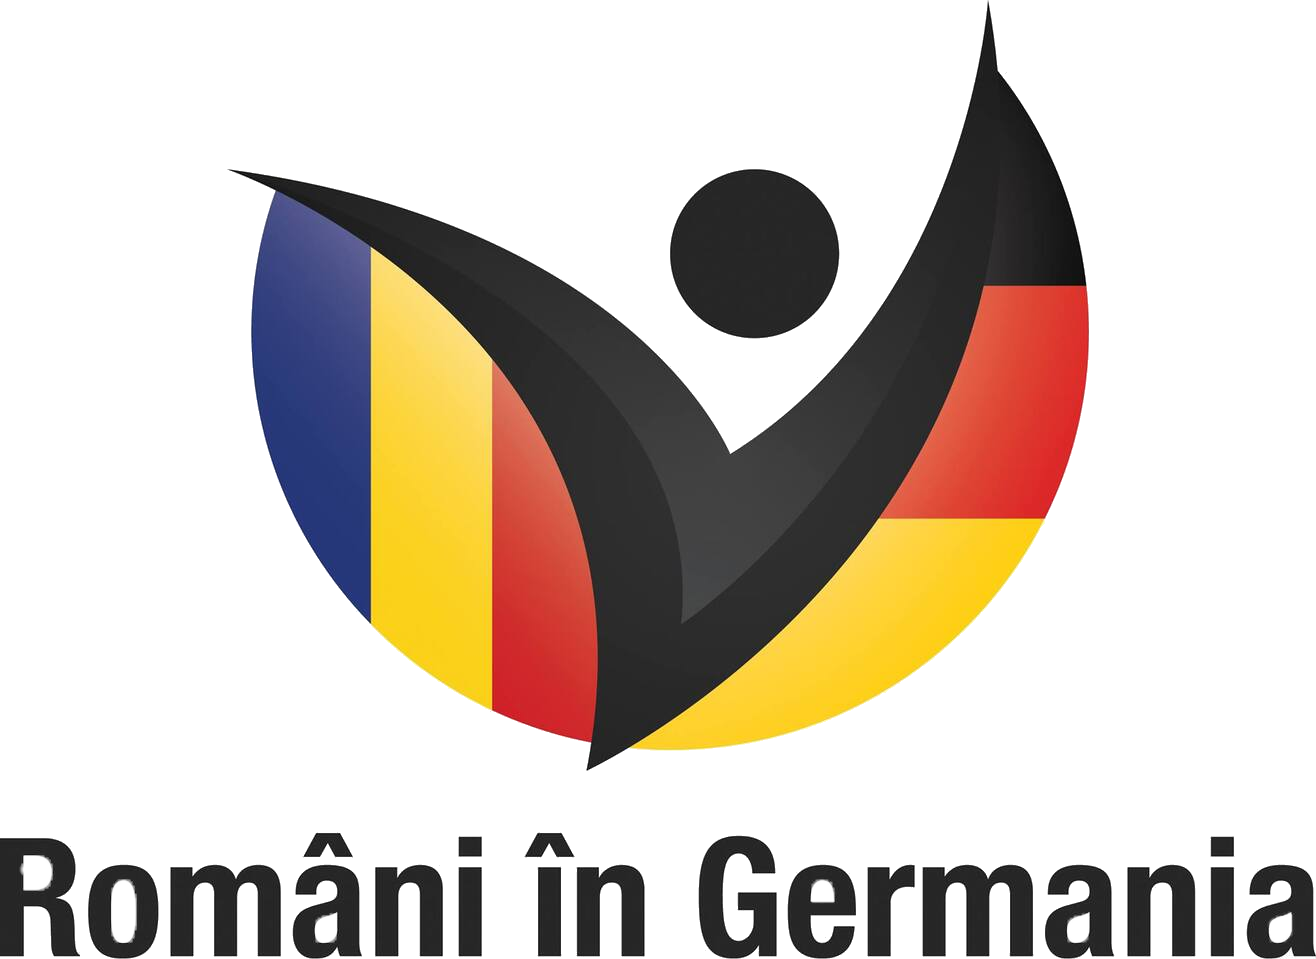 Romani in Germania – Anunturi Germania, Publicitate in Germania, Locuri de munca in Germania